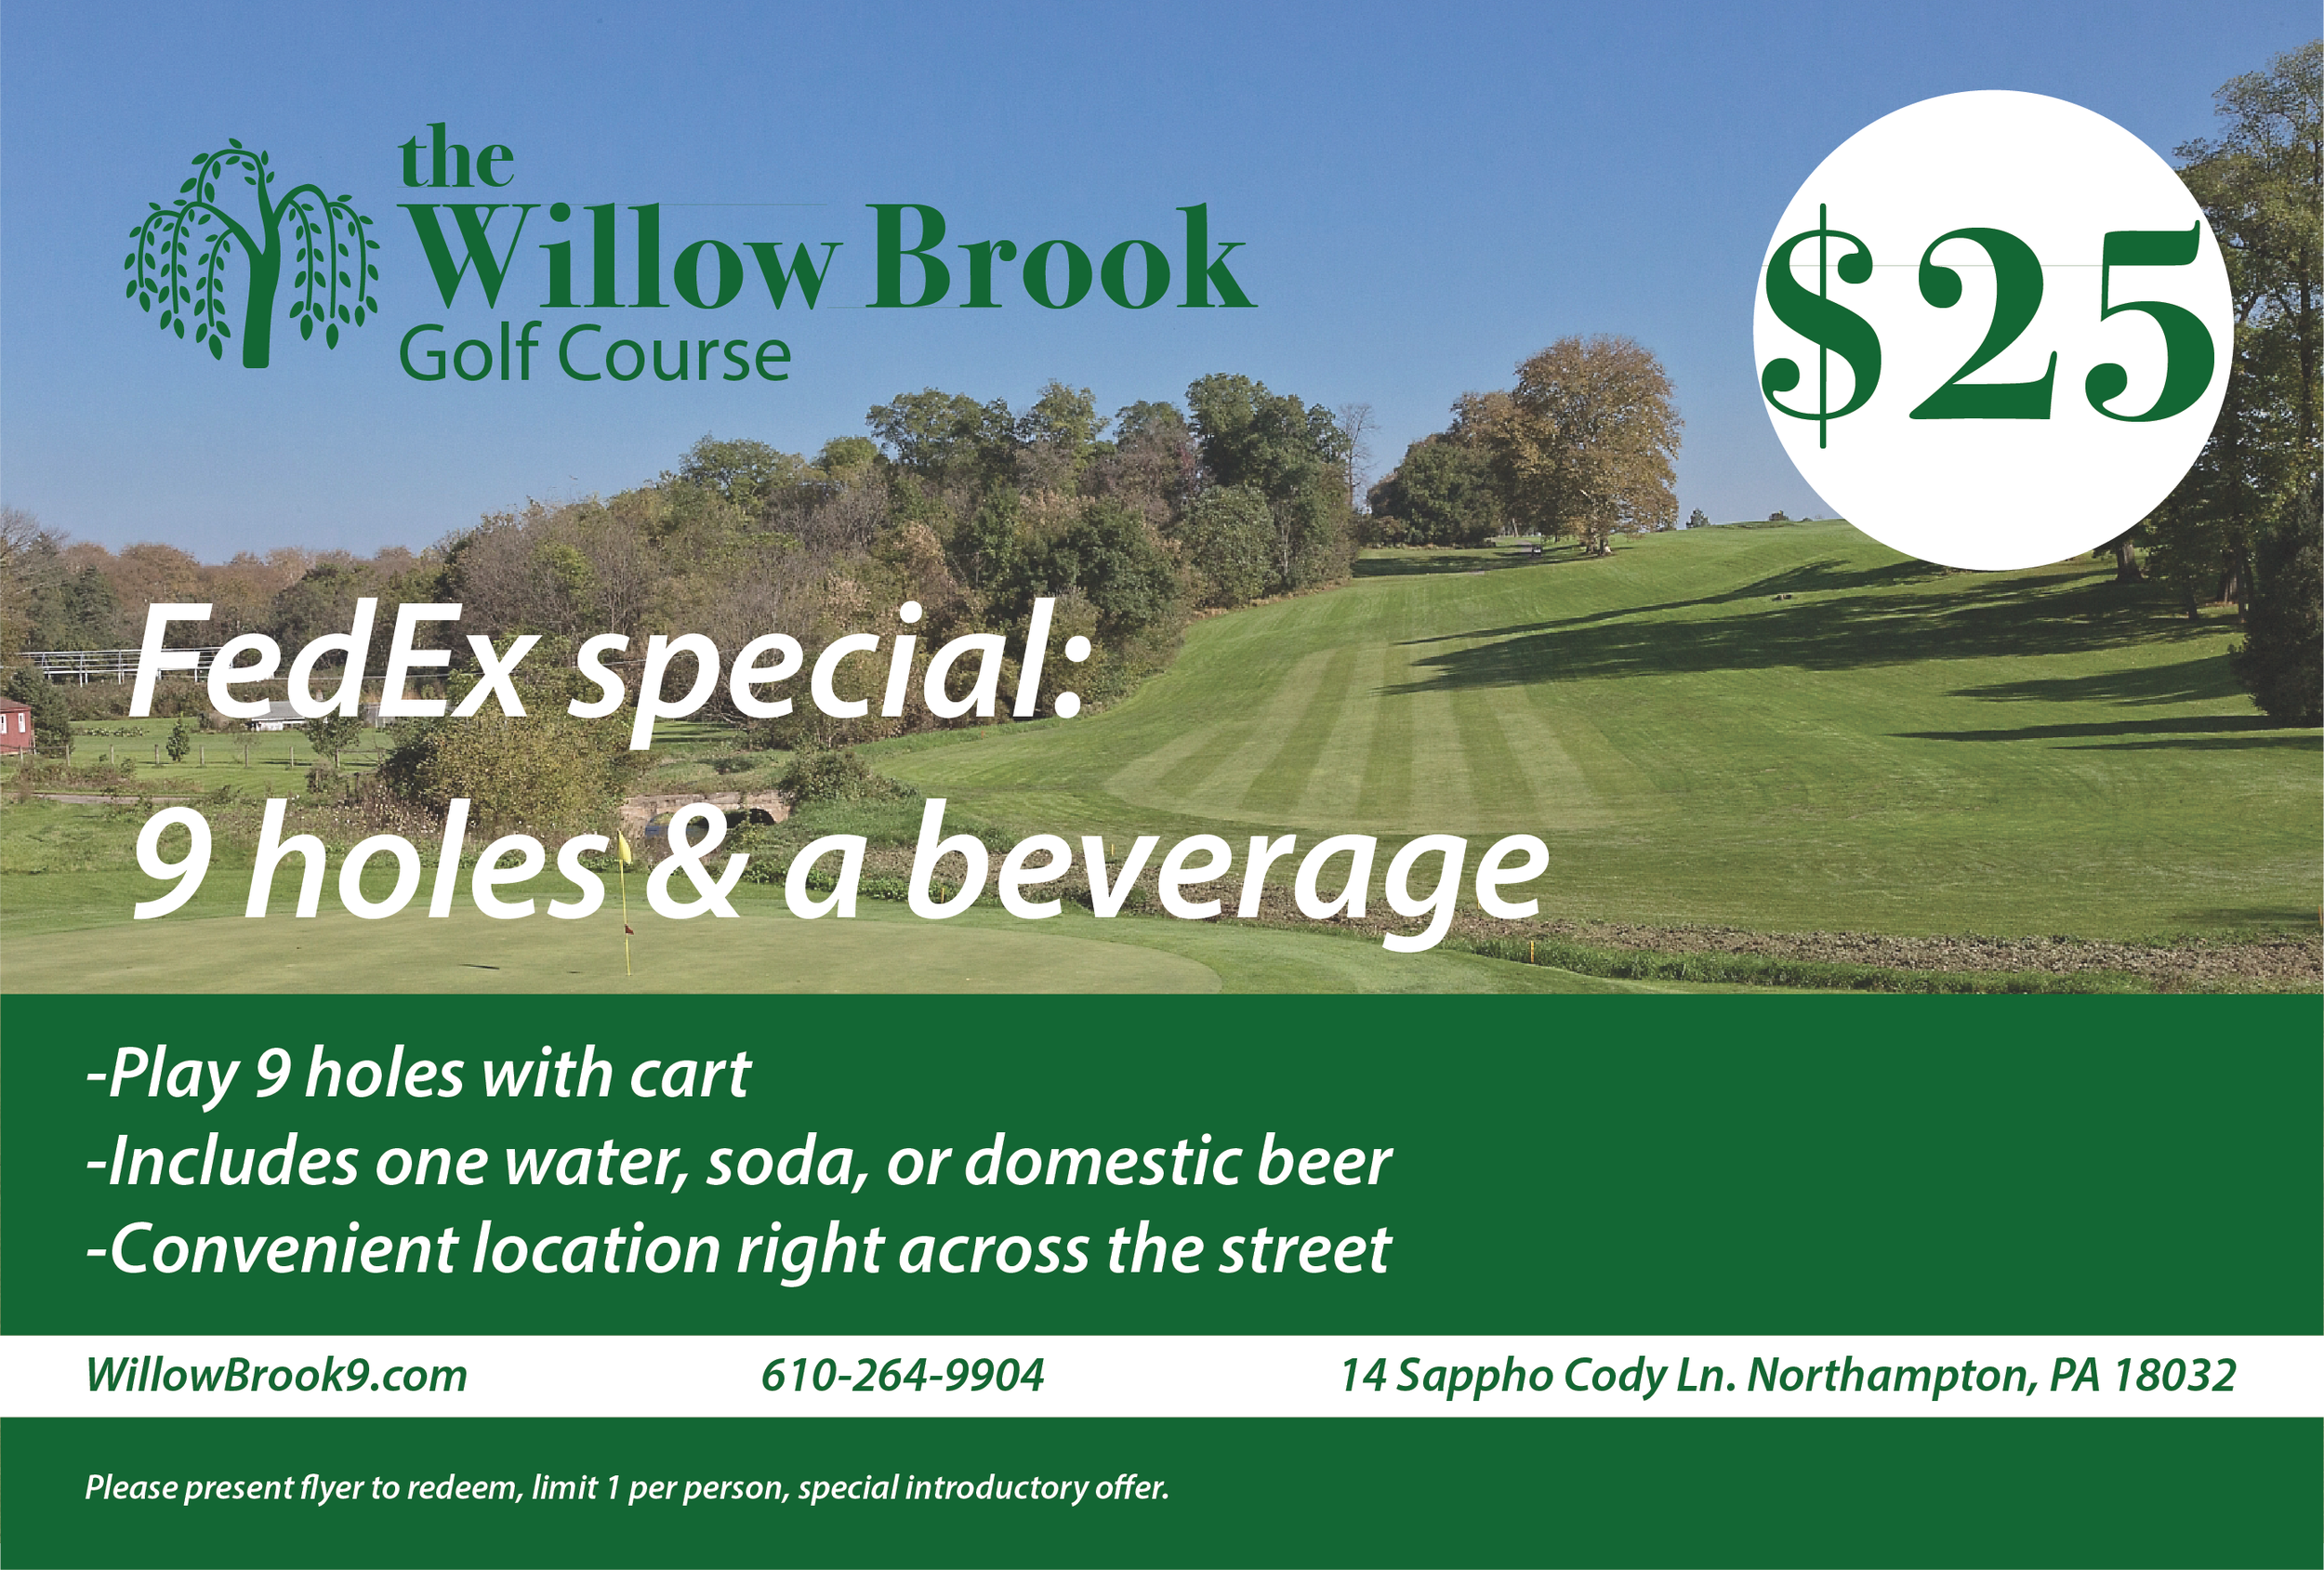 Willow Brook Golf Course, FedEx Flyer